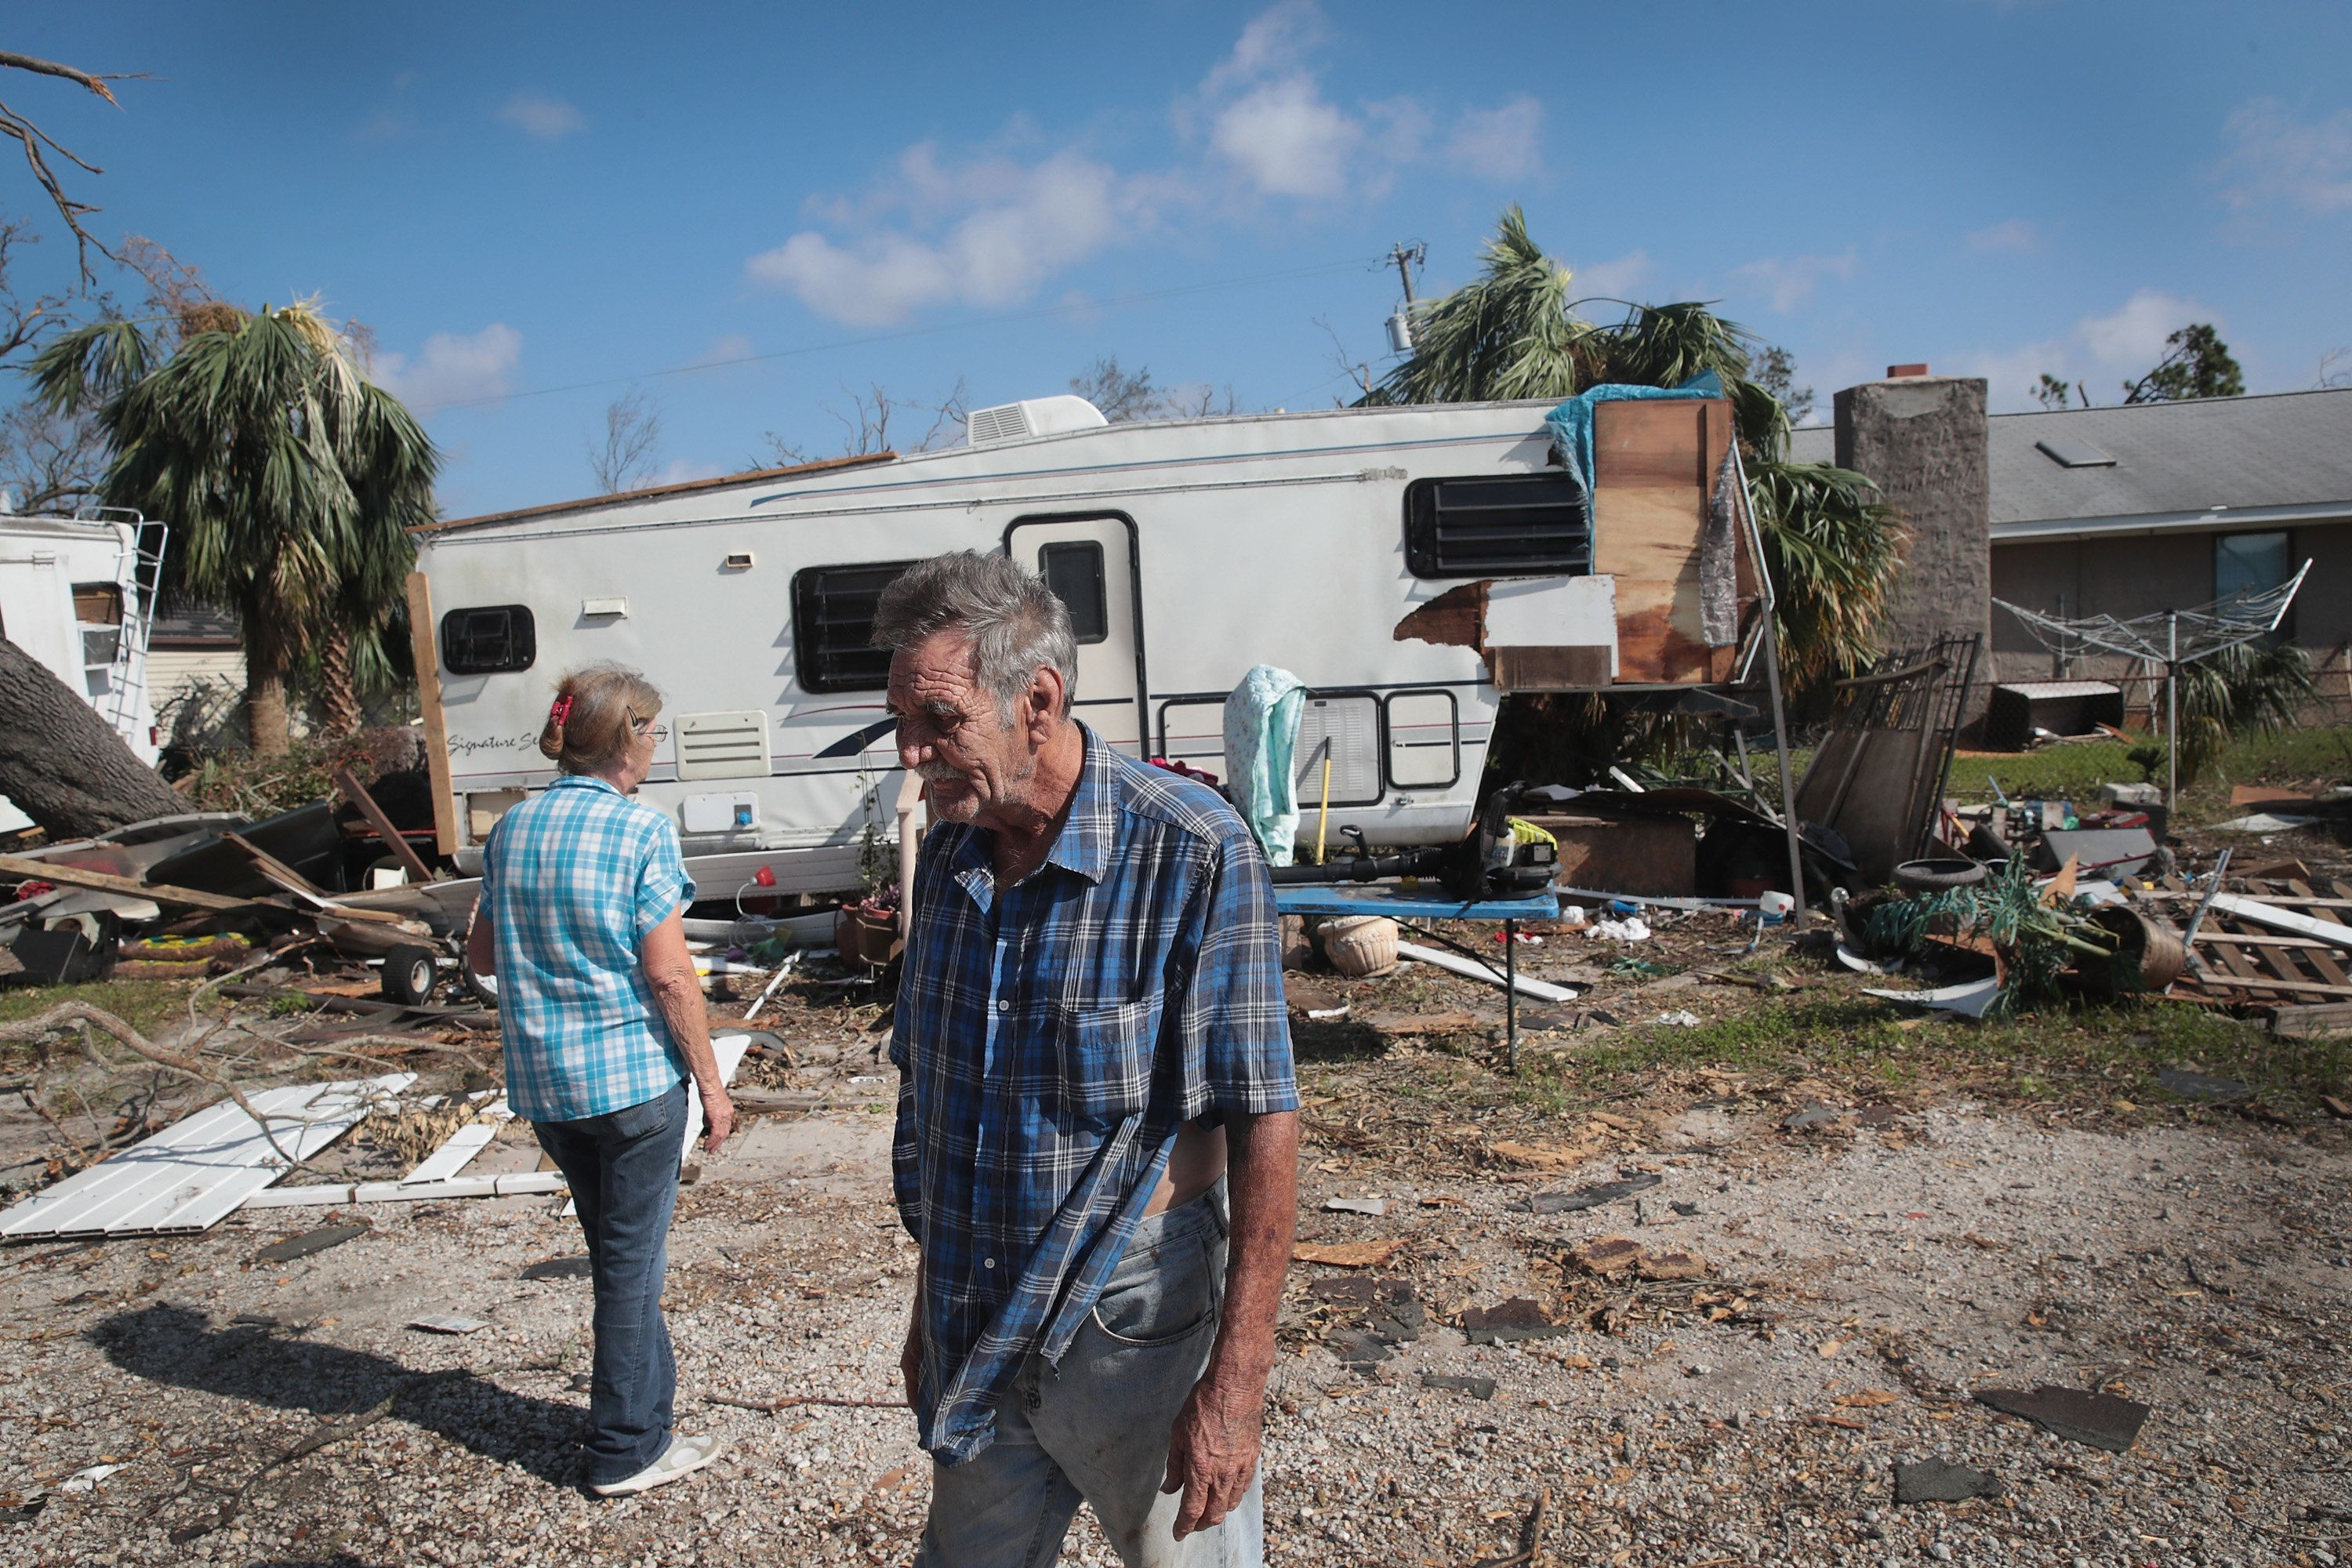 PANAMA CITY, FL - OCTOBER 14: Willie and Patsy Burton continue to recover after Hurricane Michael damaged the RV where they lived on October 15, 2018 in Panama City, Florida. Hurricane Michael slammed into the Florida Panhandle on October 10, as a category 4 storm causing massive damage and claiming more that 15 lives.  (Photo by Scott Olson/Getty Images)